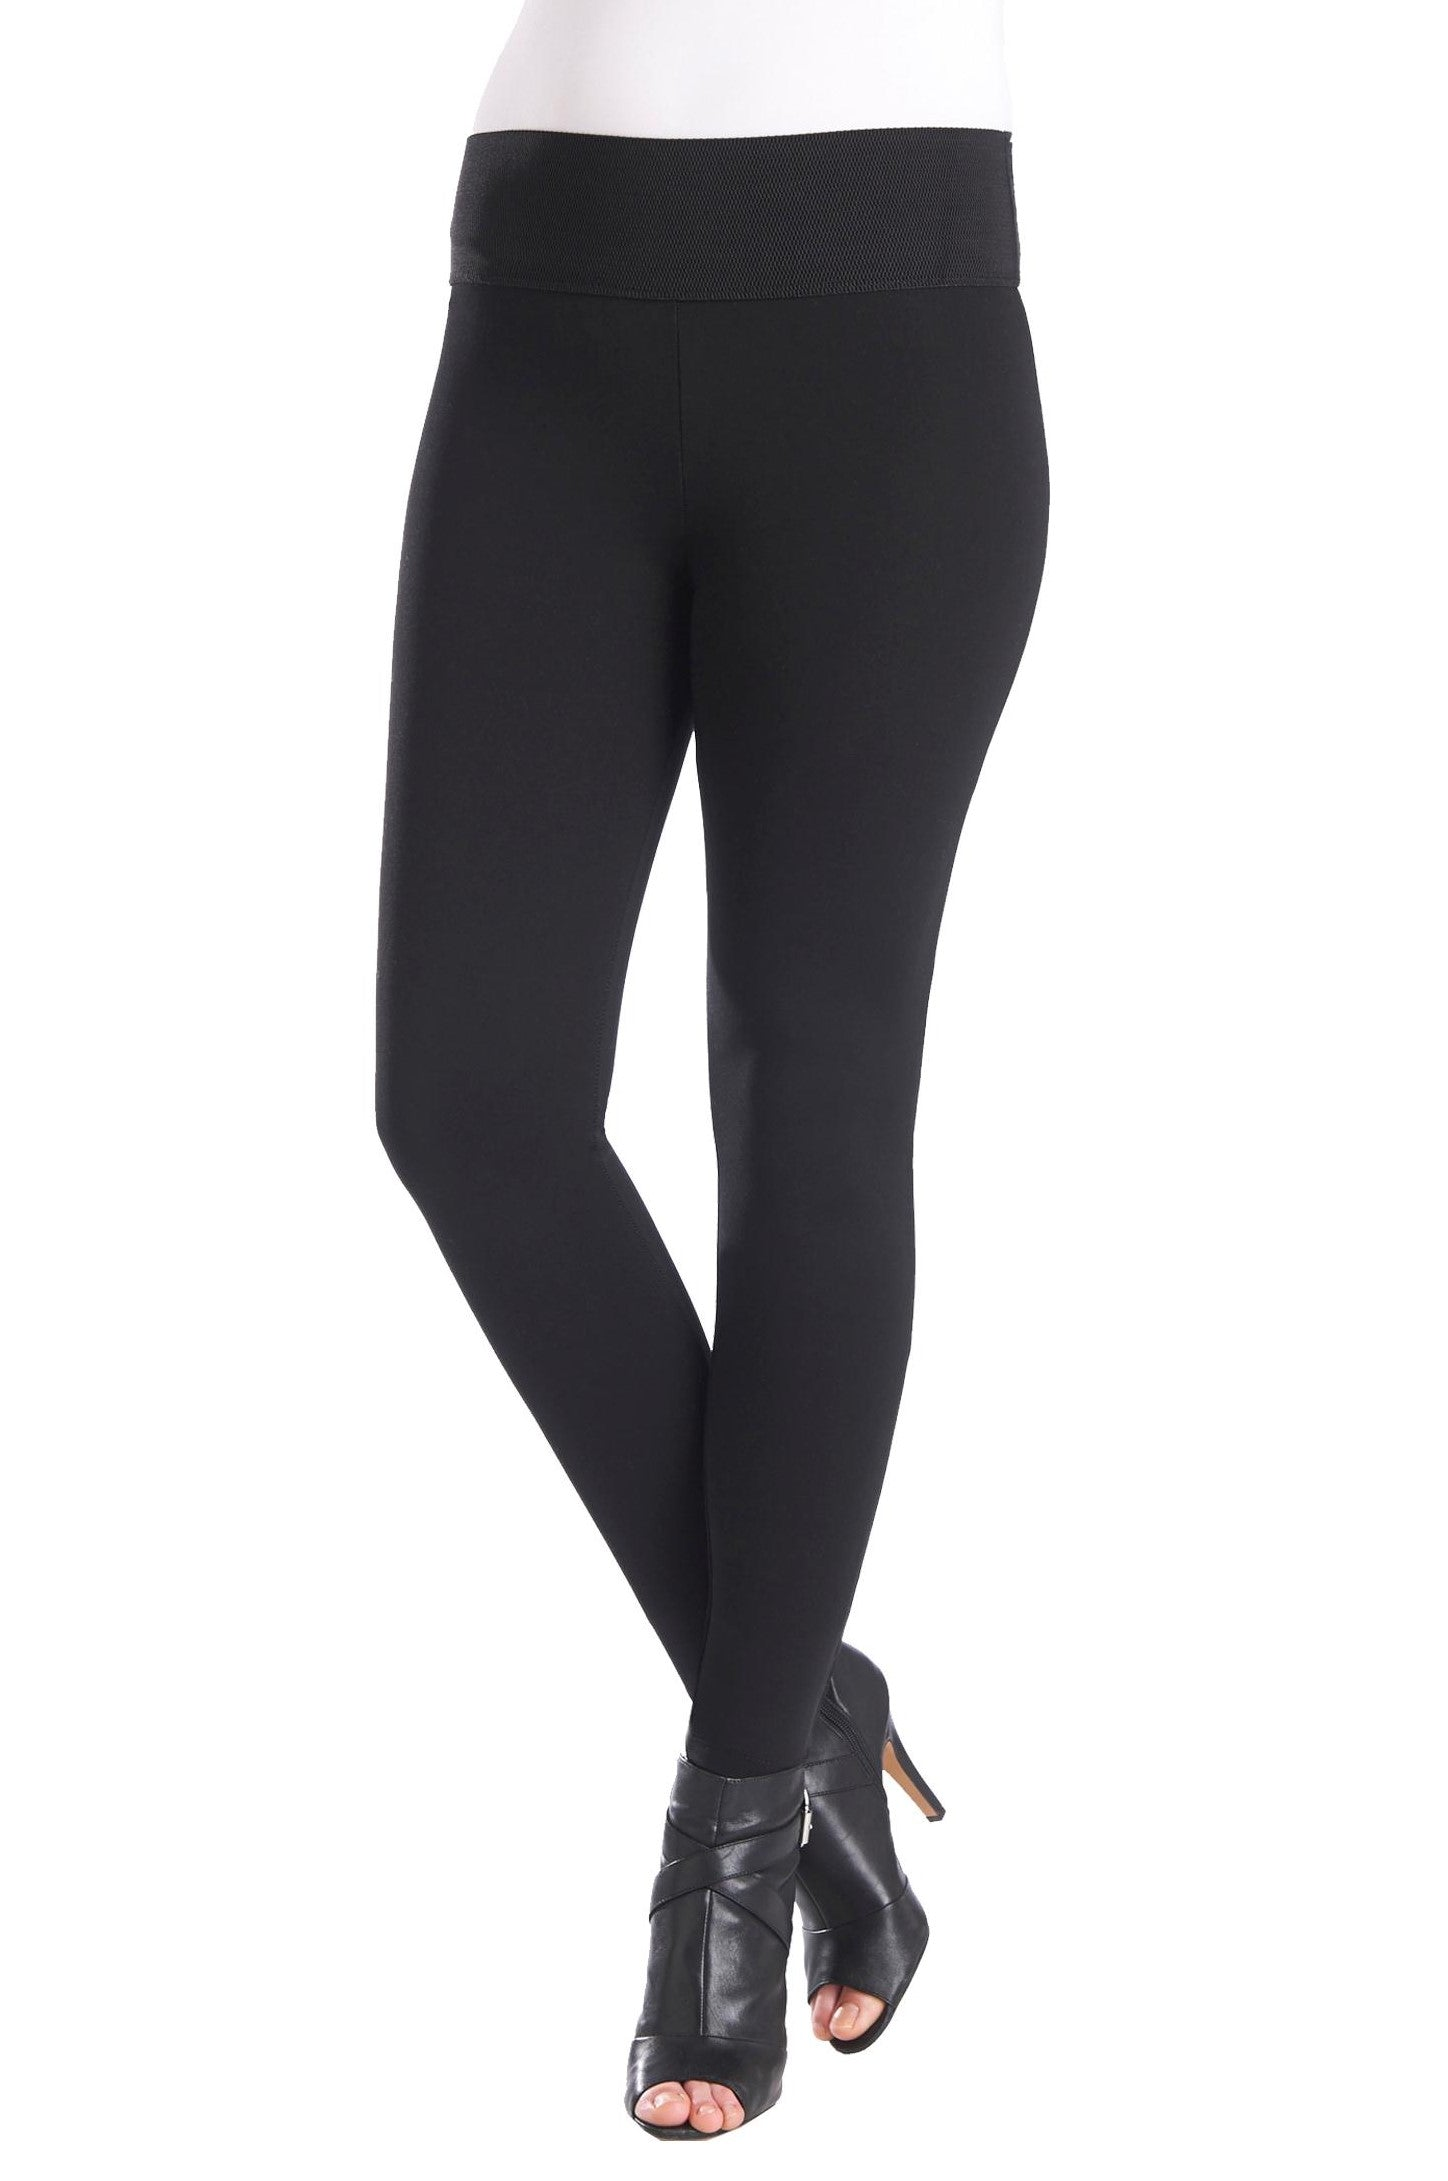 "Front view woman wearing black compression leggings with wide 3.5"" waistband from Nygard Slims"